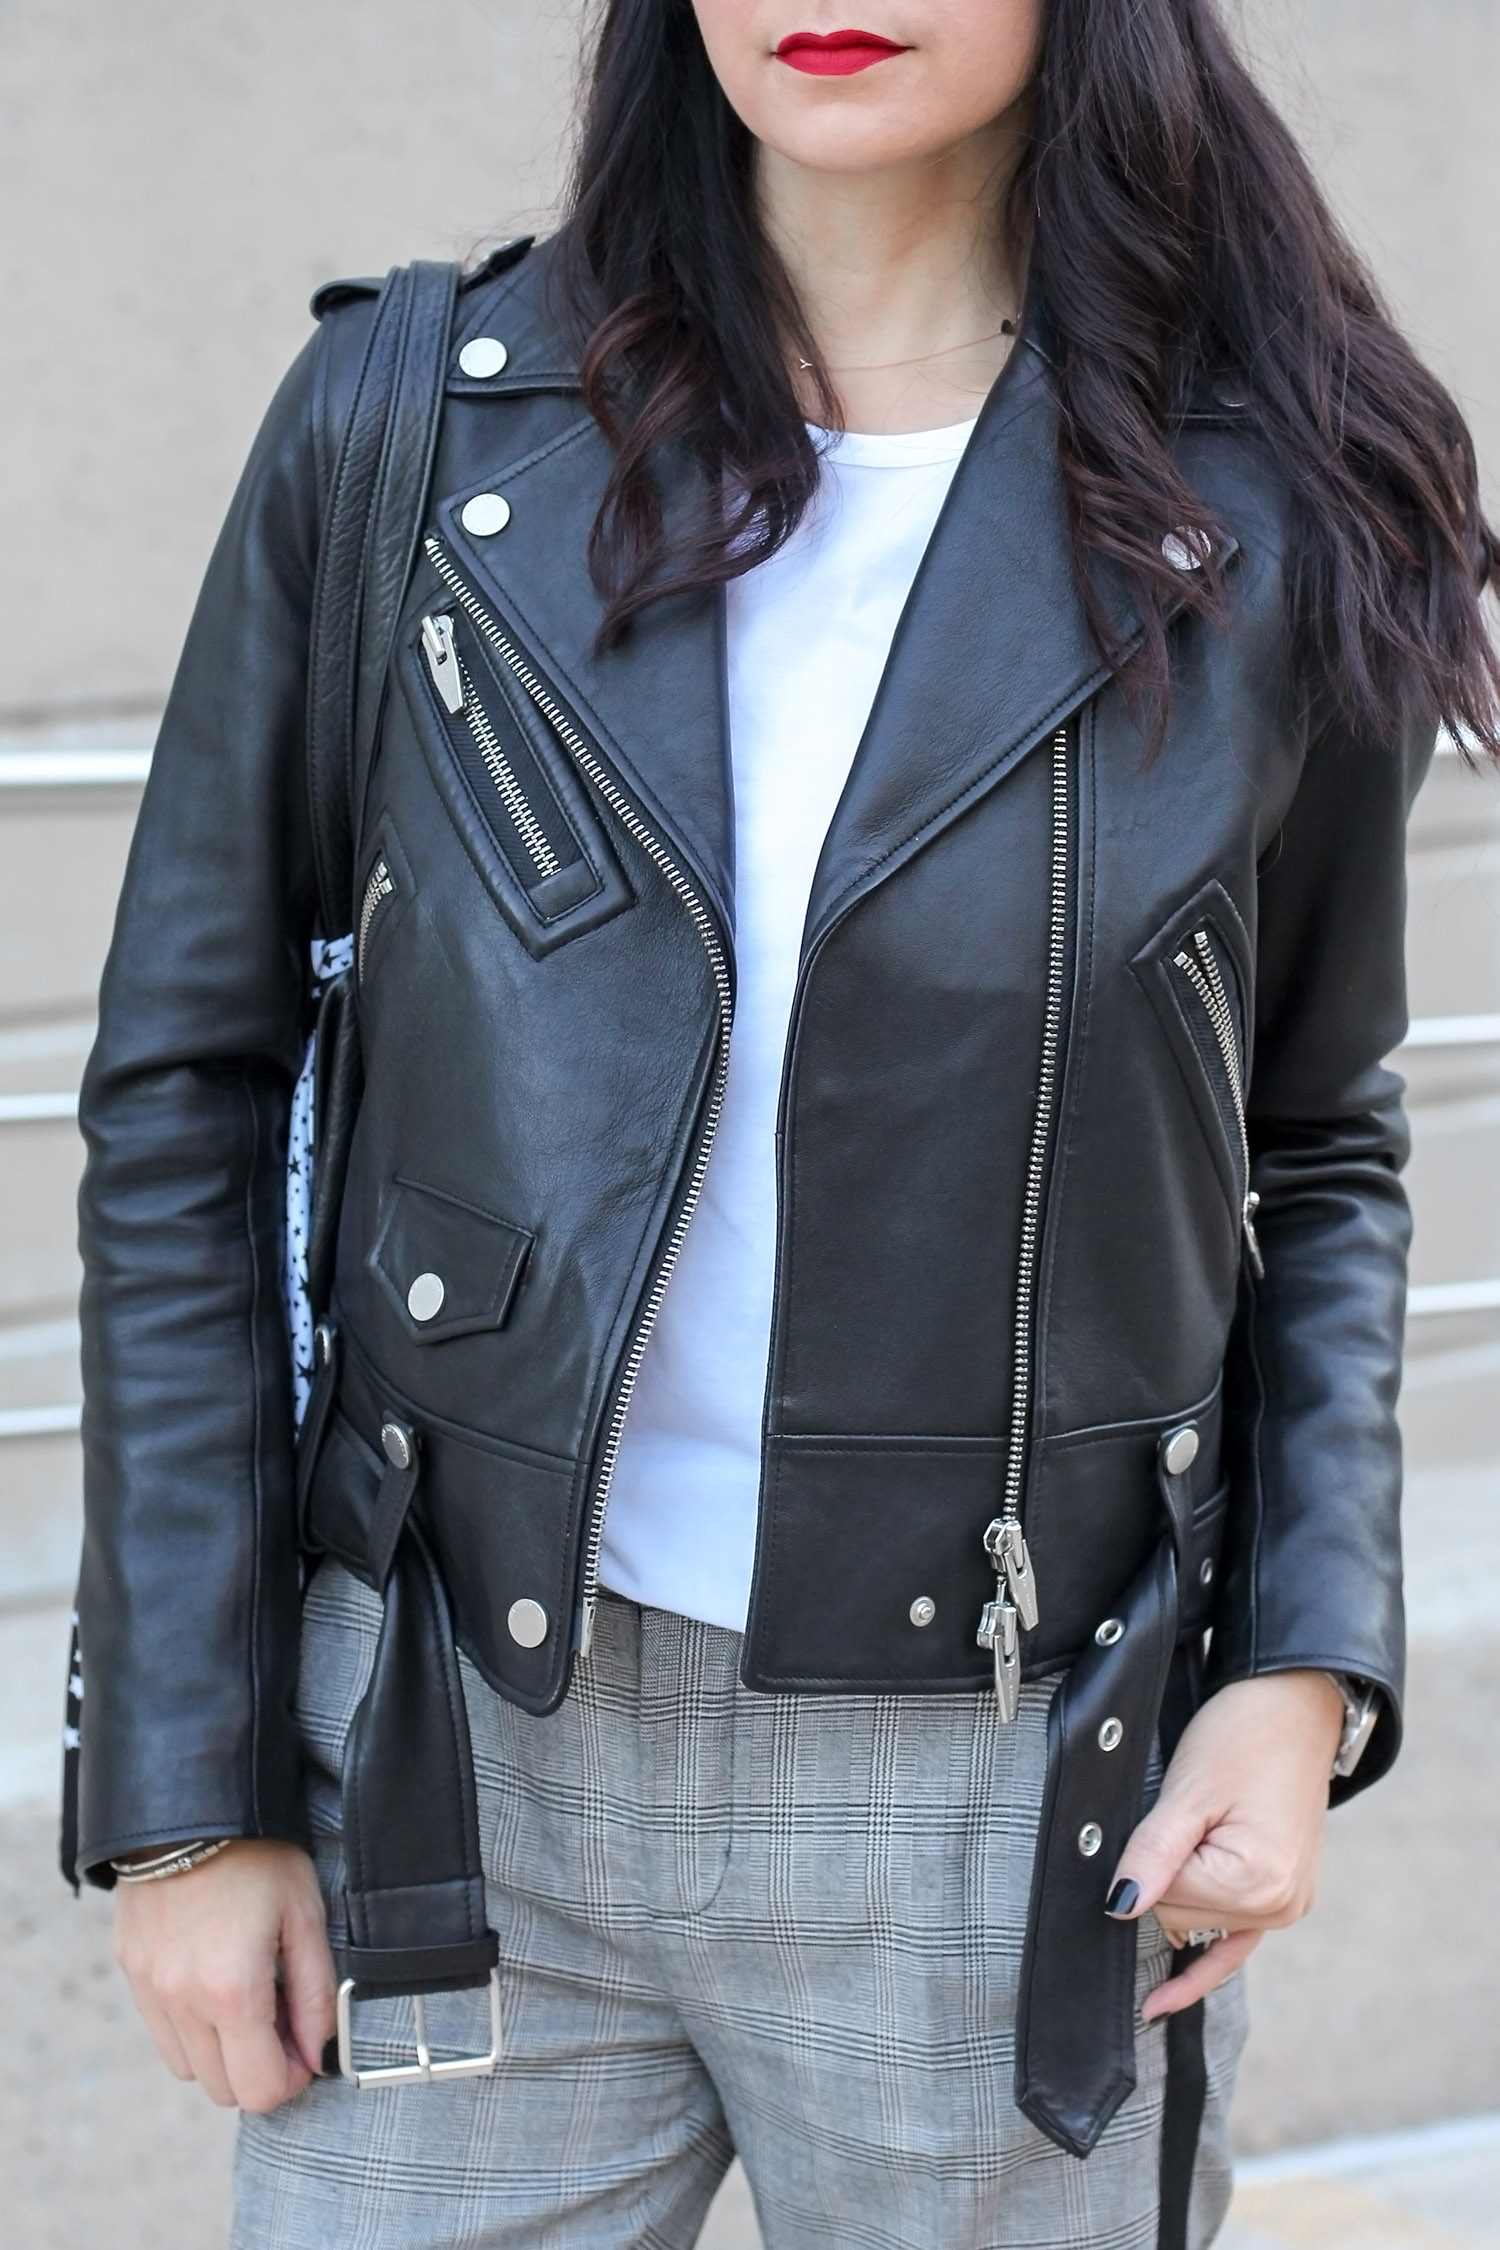 The Arrivals Leather Jacket